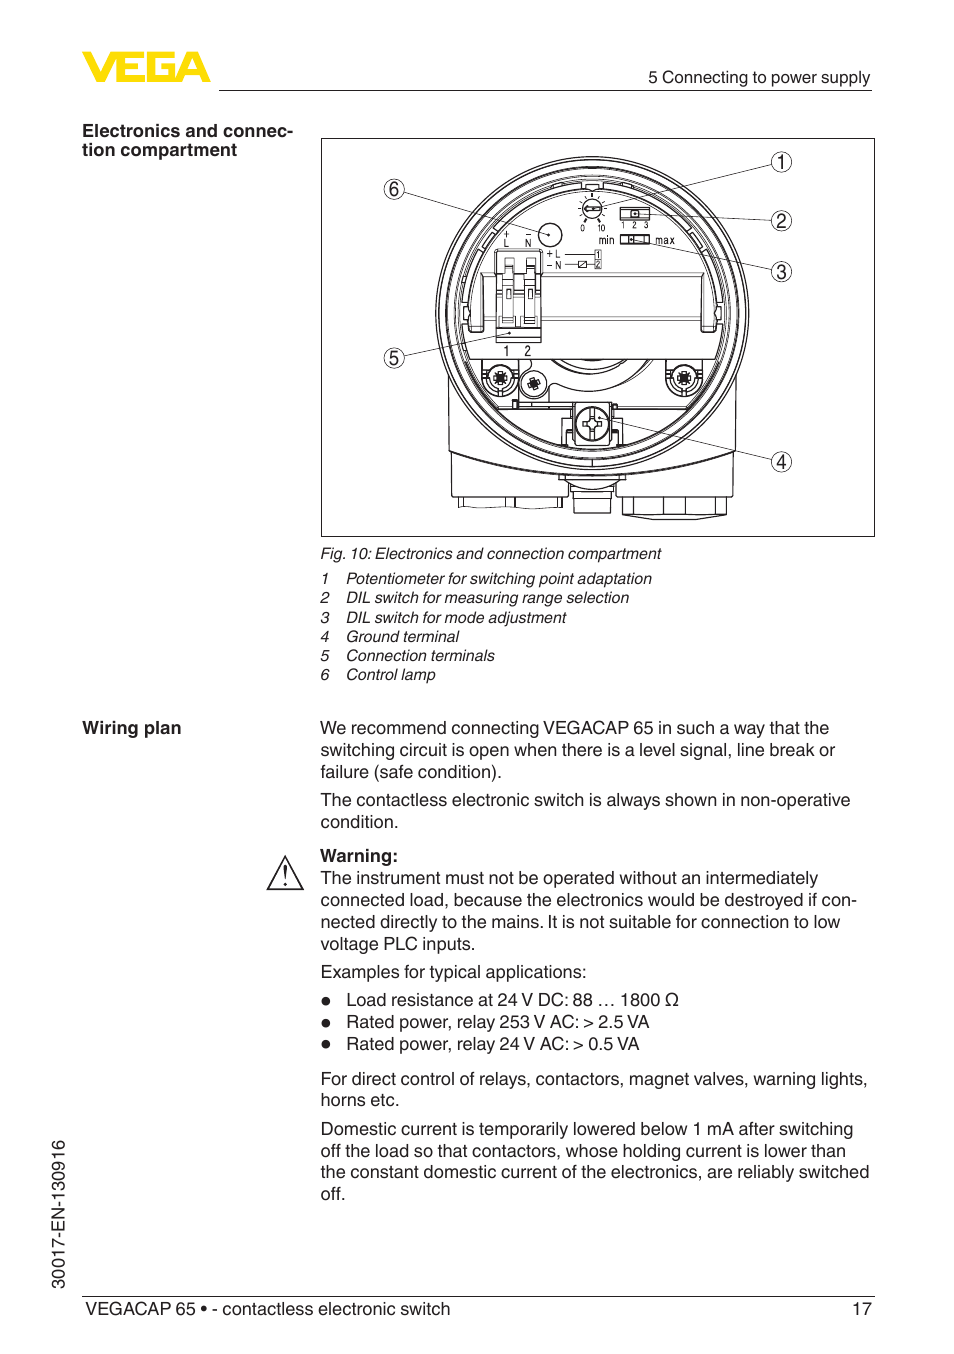 Vega Vegacap 65 Contactless Electronic Switch User Manual Page Relay Holding Current 17 40